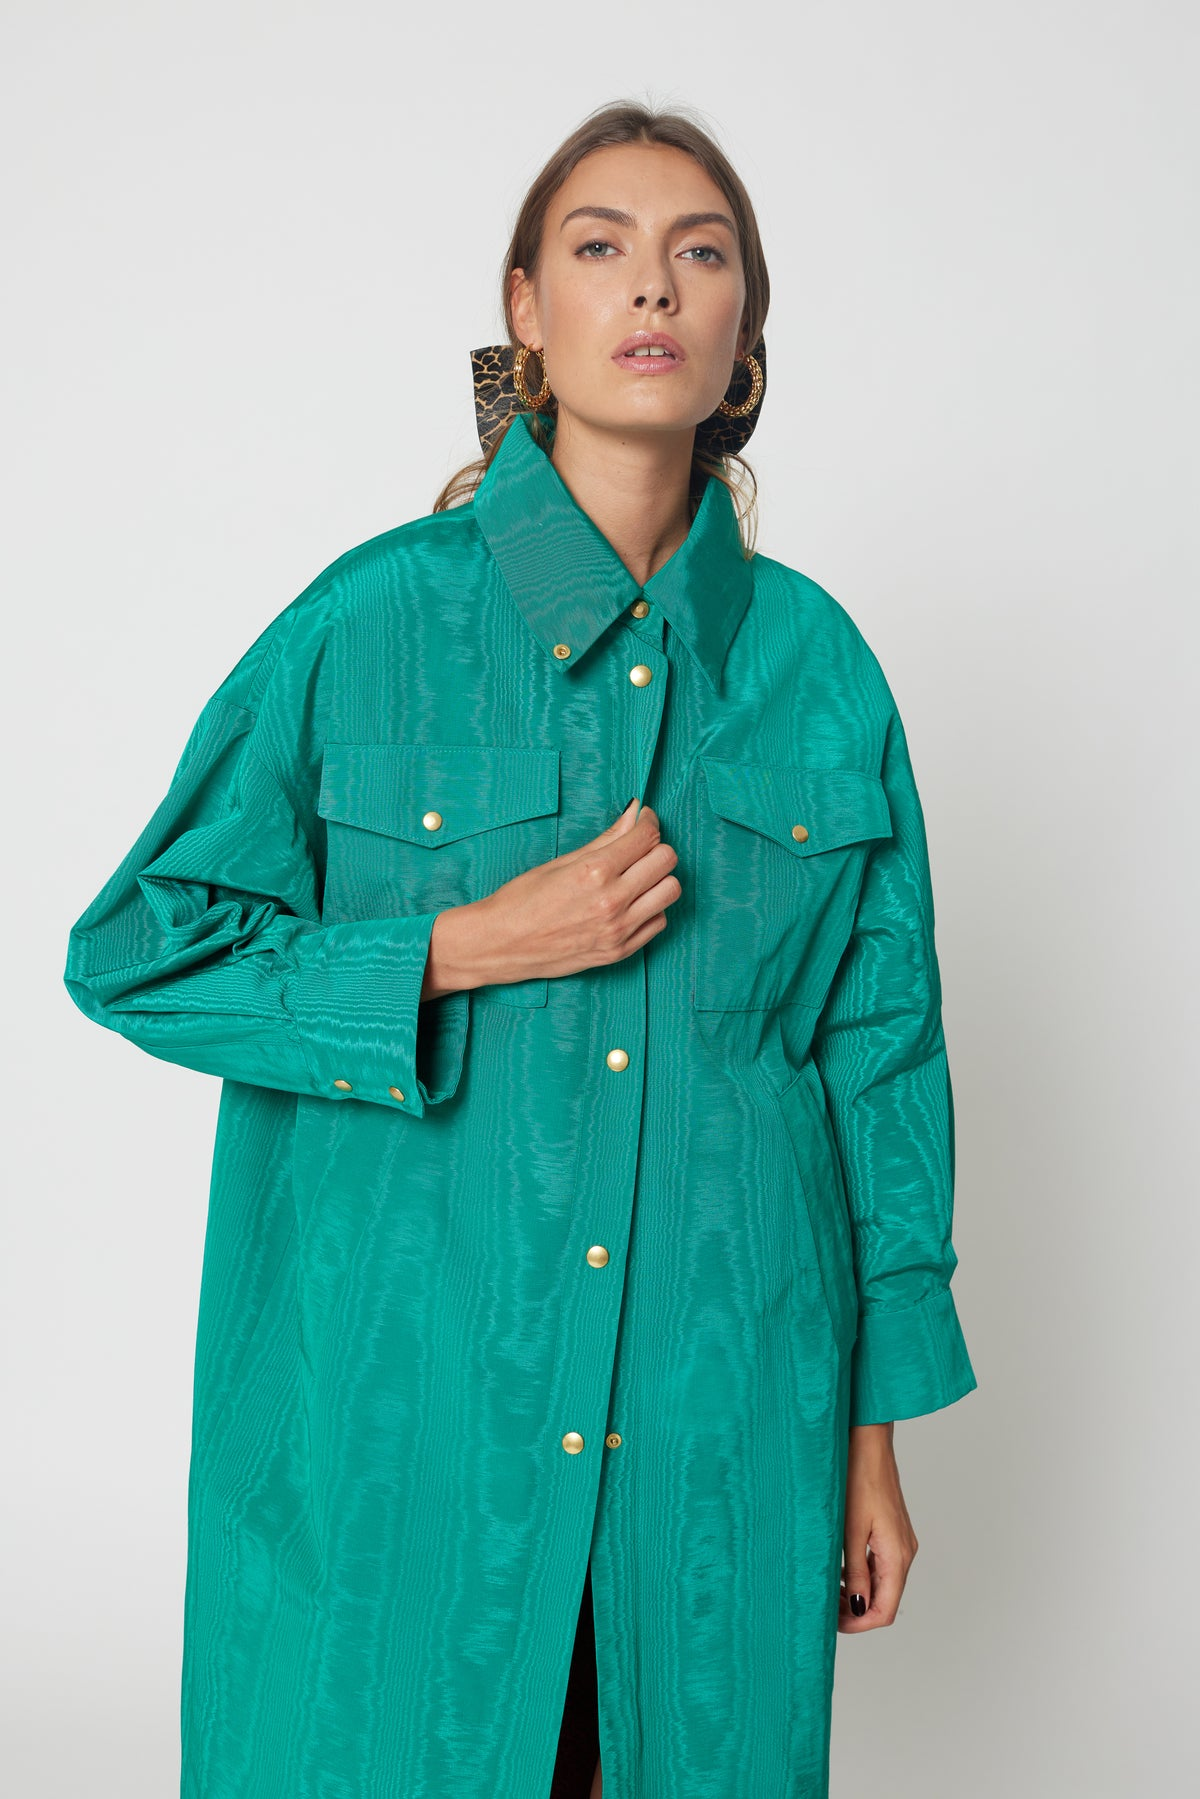 Marines XXL coat in moire green